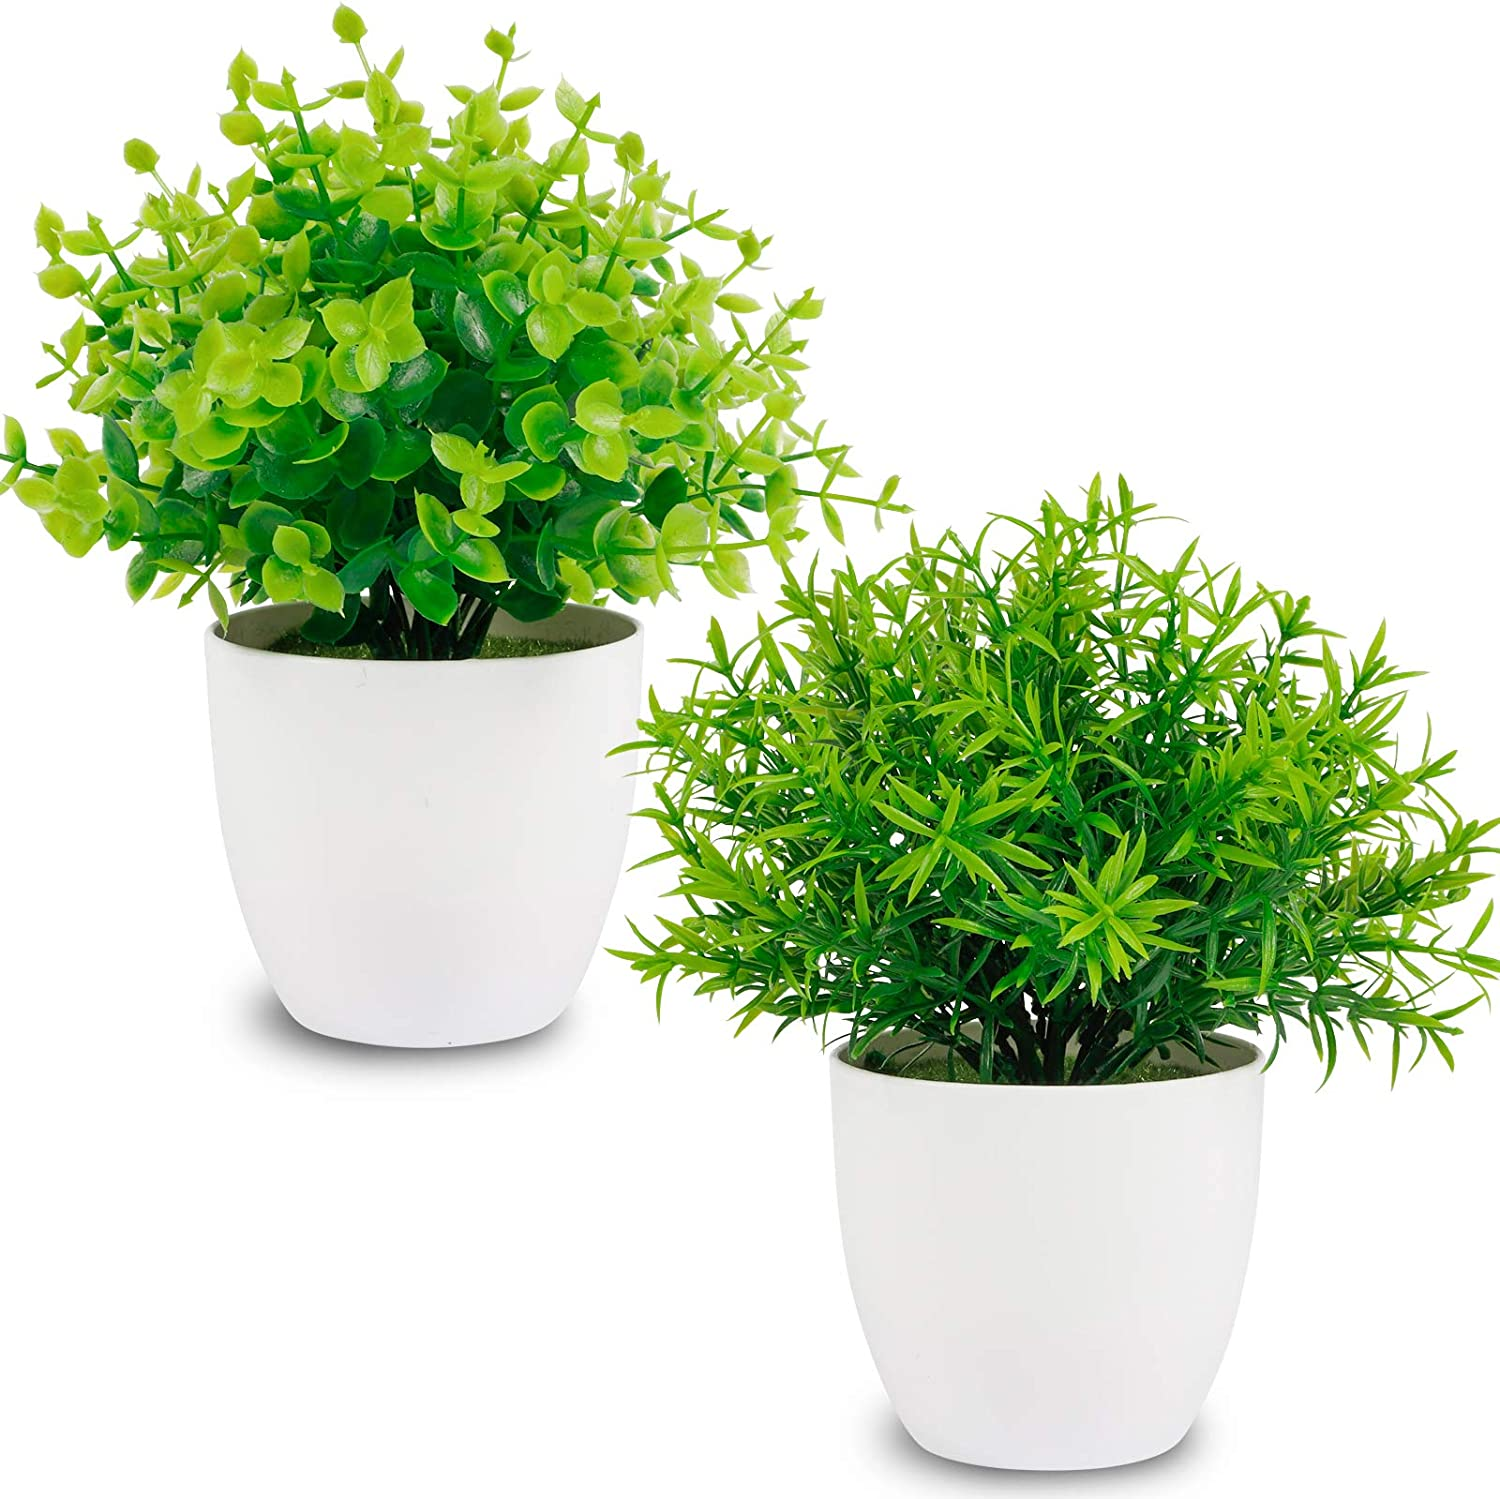 Whonline 2pcs Artificial Potted Plants Fake Mini Greenery Eucalyptus and Rosemary Leaves Plants in Plastic Pot for Home Table Desk Office Bathroom Decor